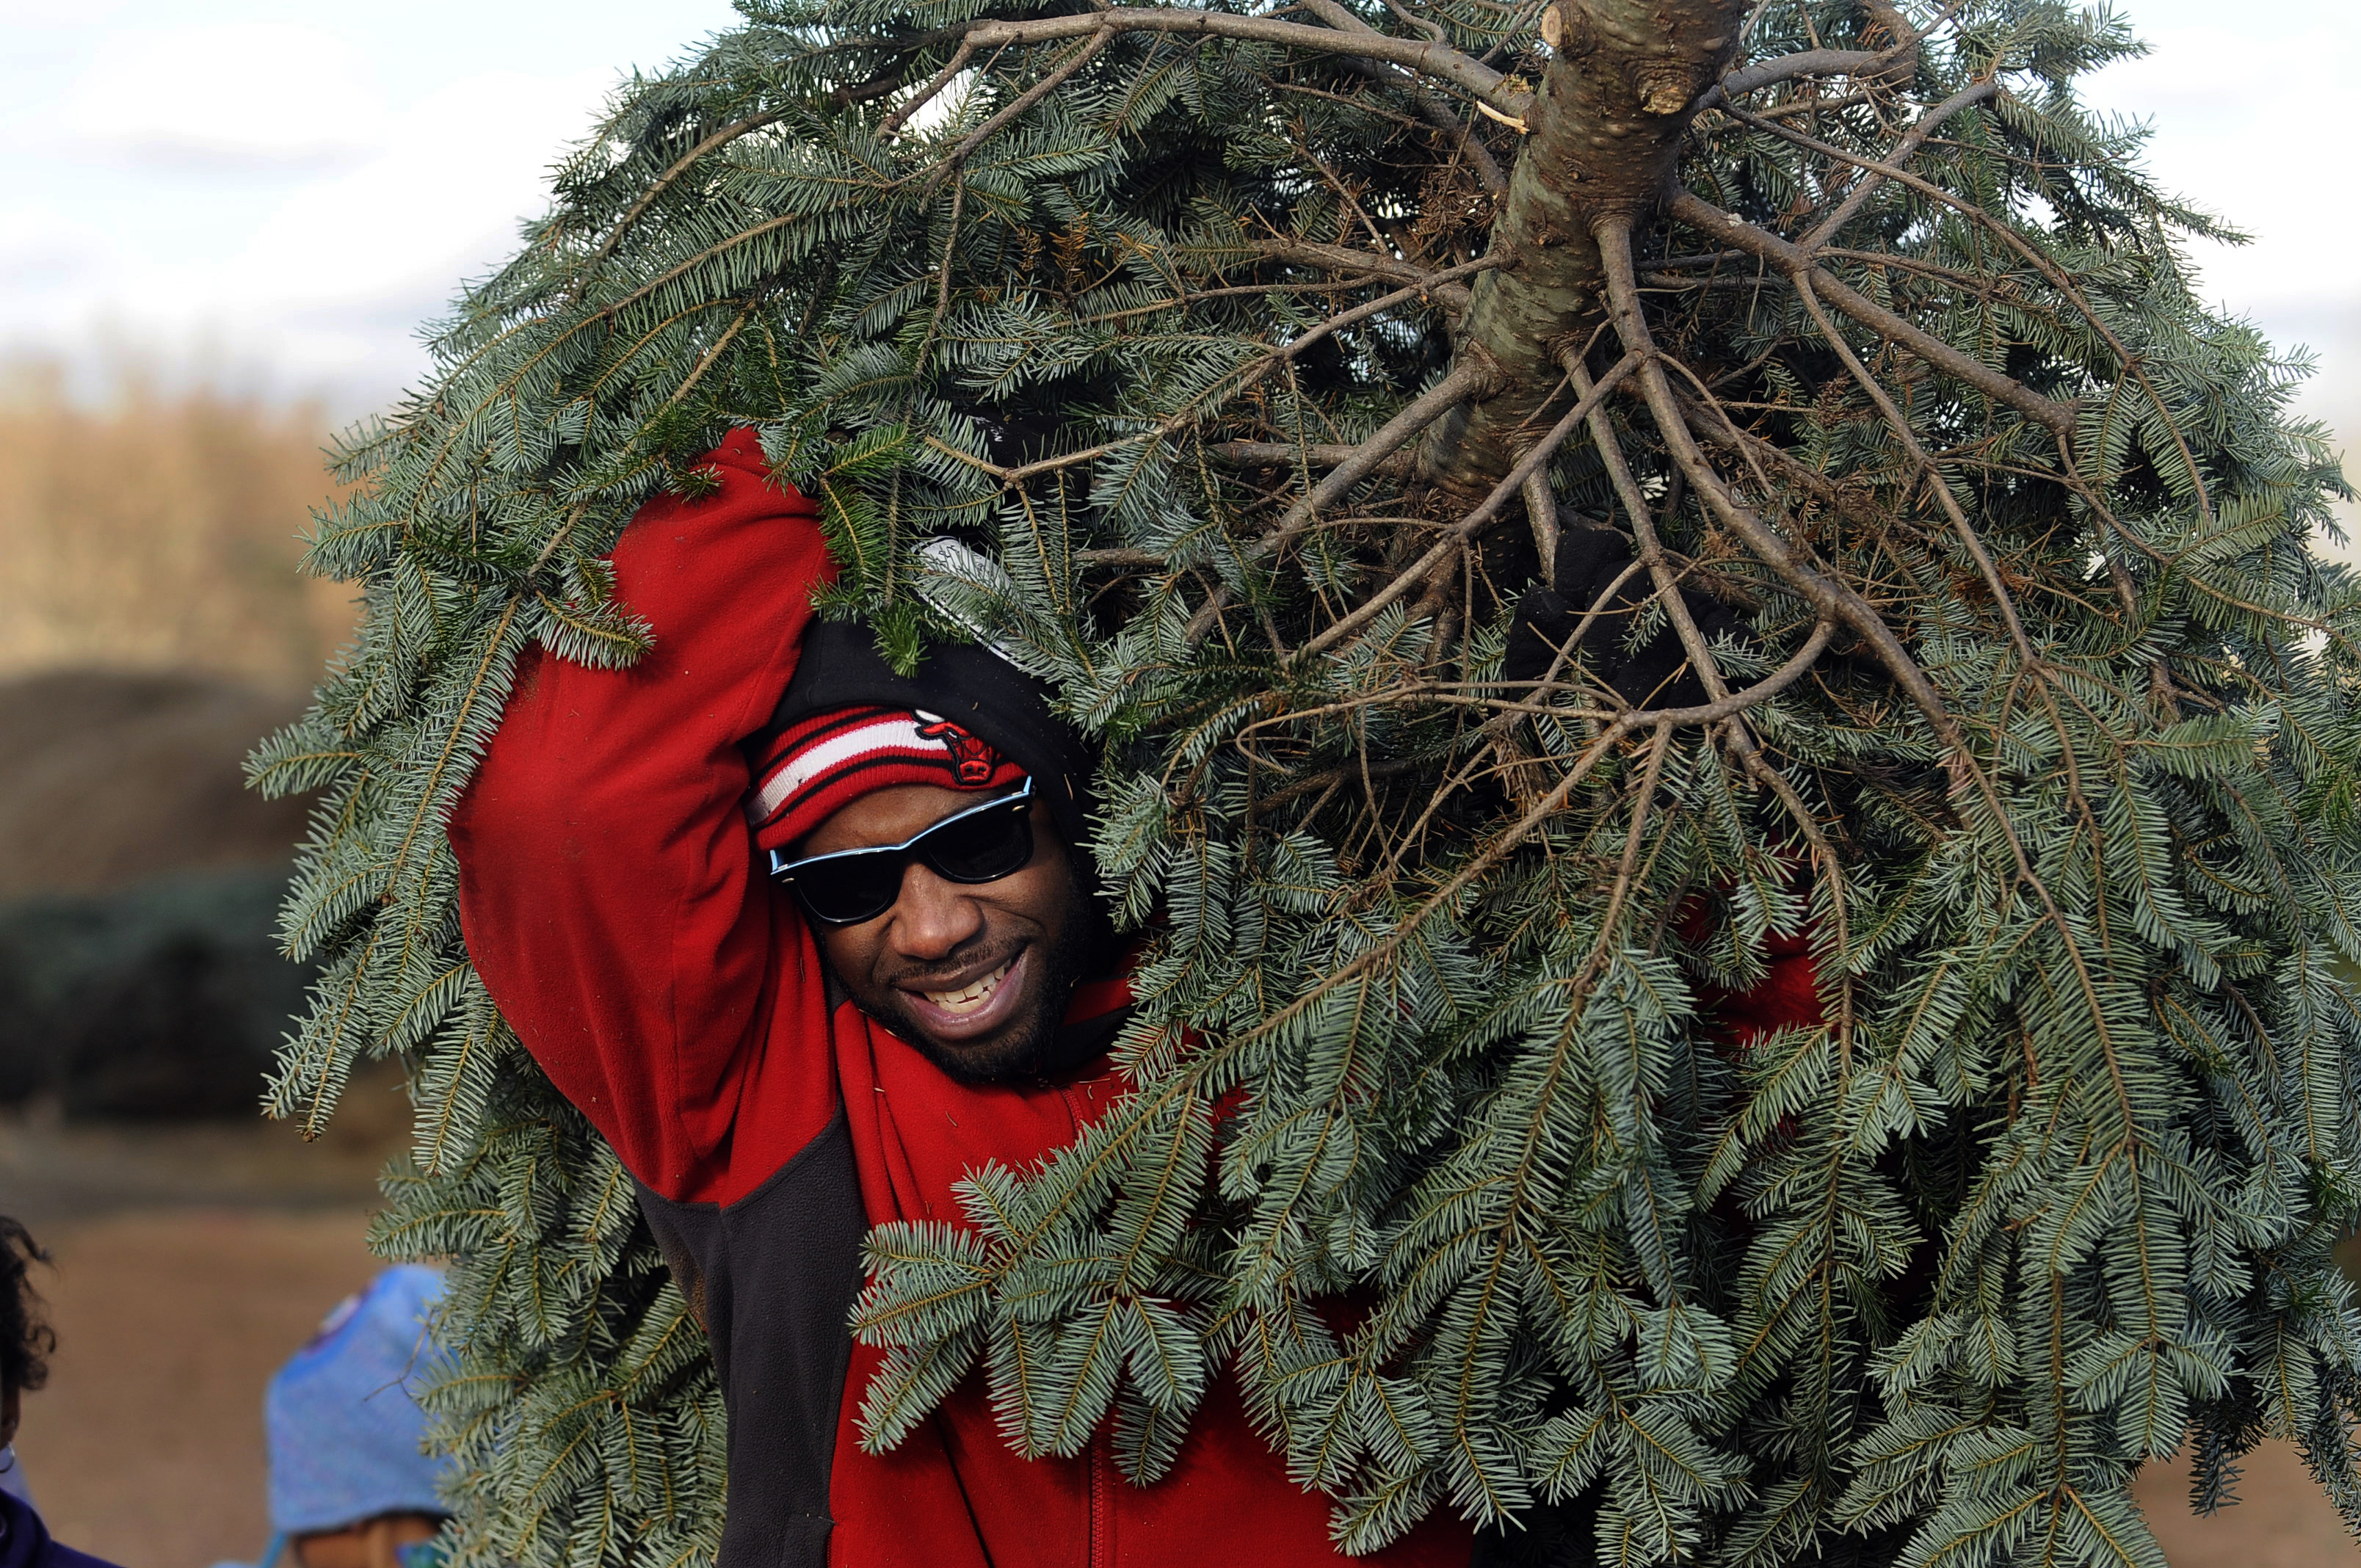 SOMERS 11/29/13 Allen Deronsle, of Vernon, carries a Christmas tree he and his family cut at Hemlock Hill Christmas tree farm in Somers Friday. Deronsle has been cutting a tree at the farm for the past eight years.  CLOE POISSON|cpoisson@courant.com